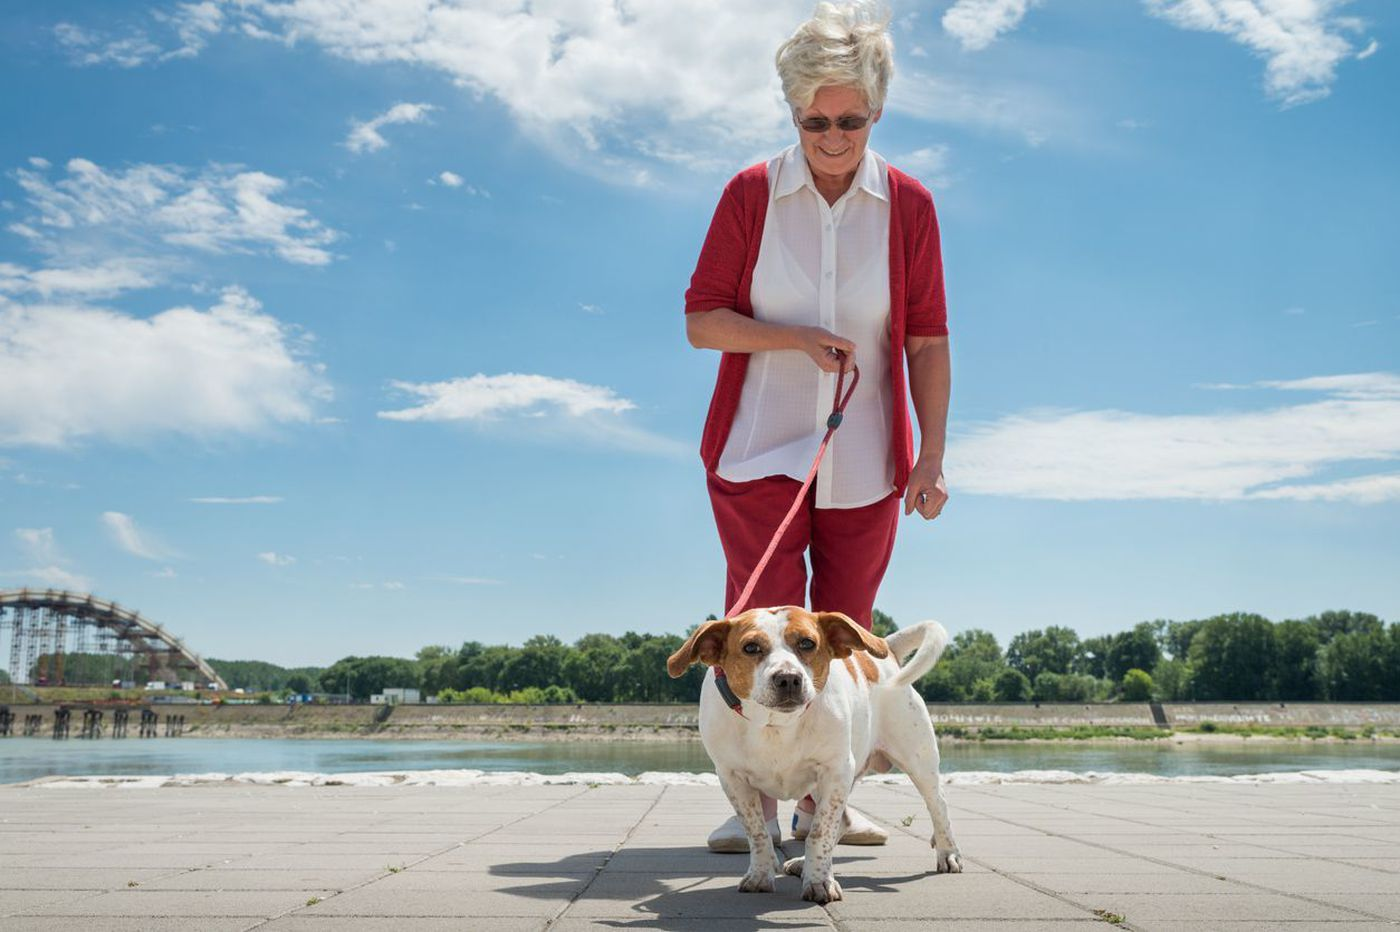 Dog walking is leading to more broken bones in older adults